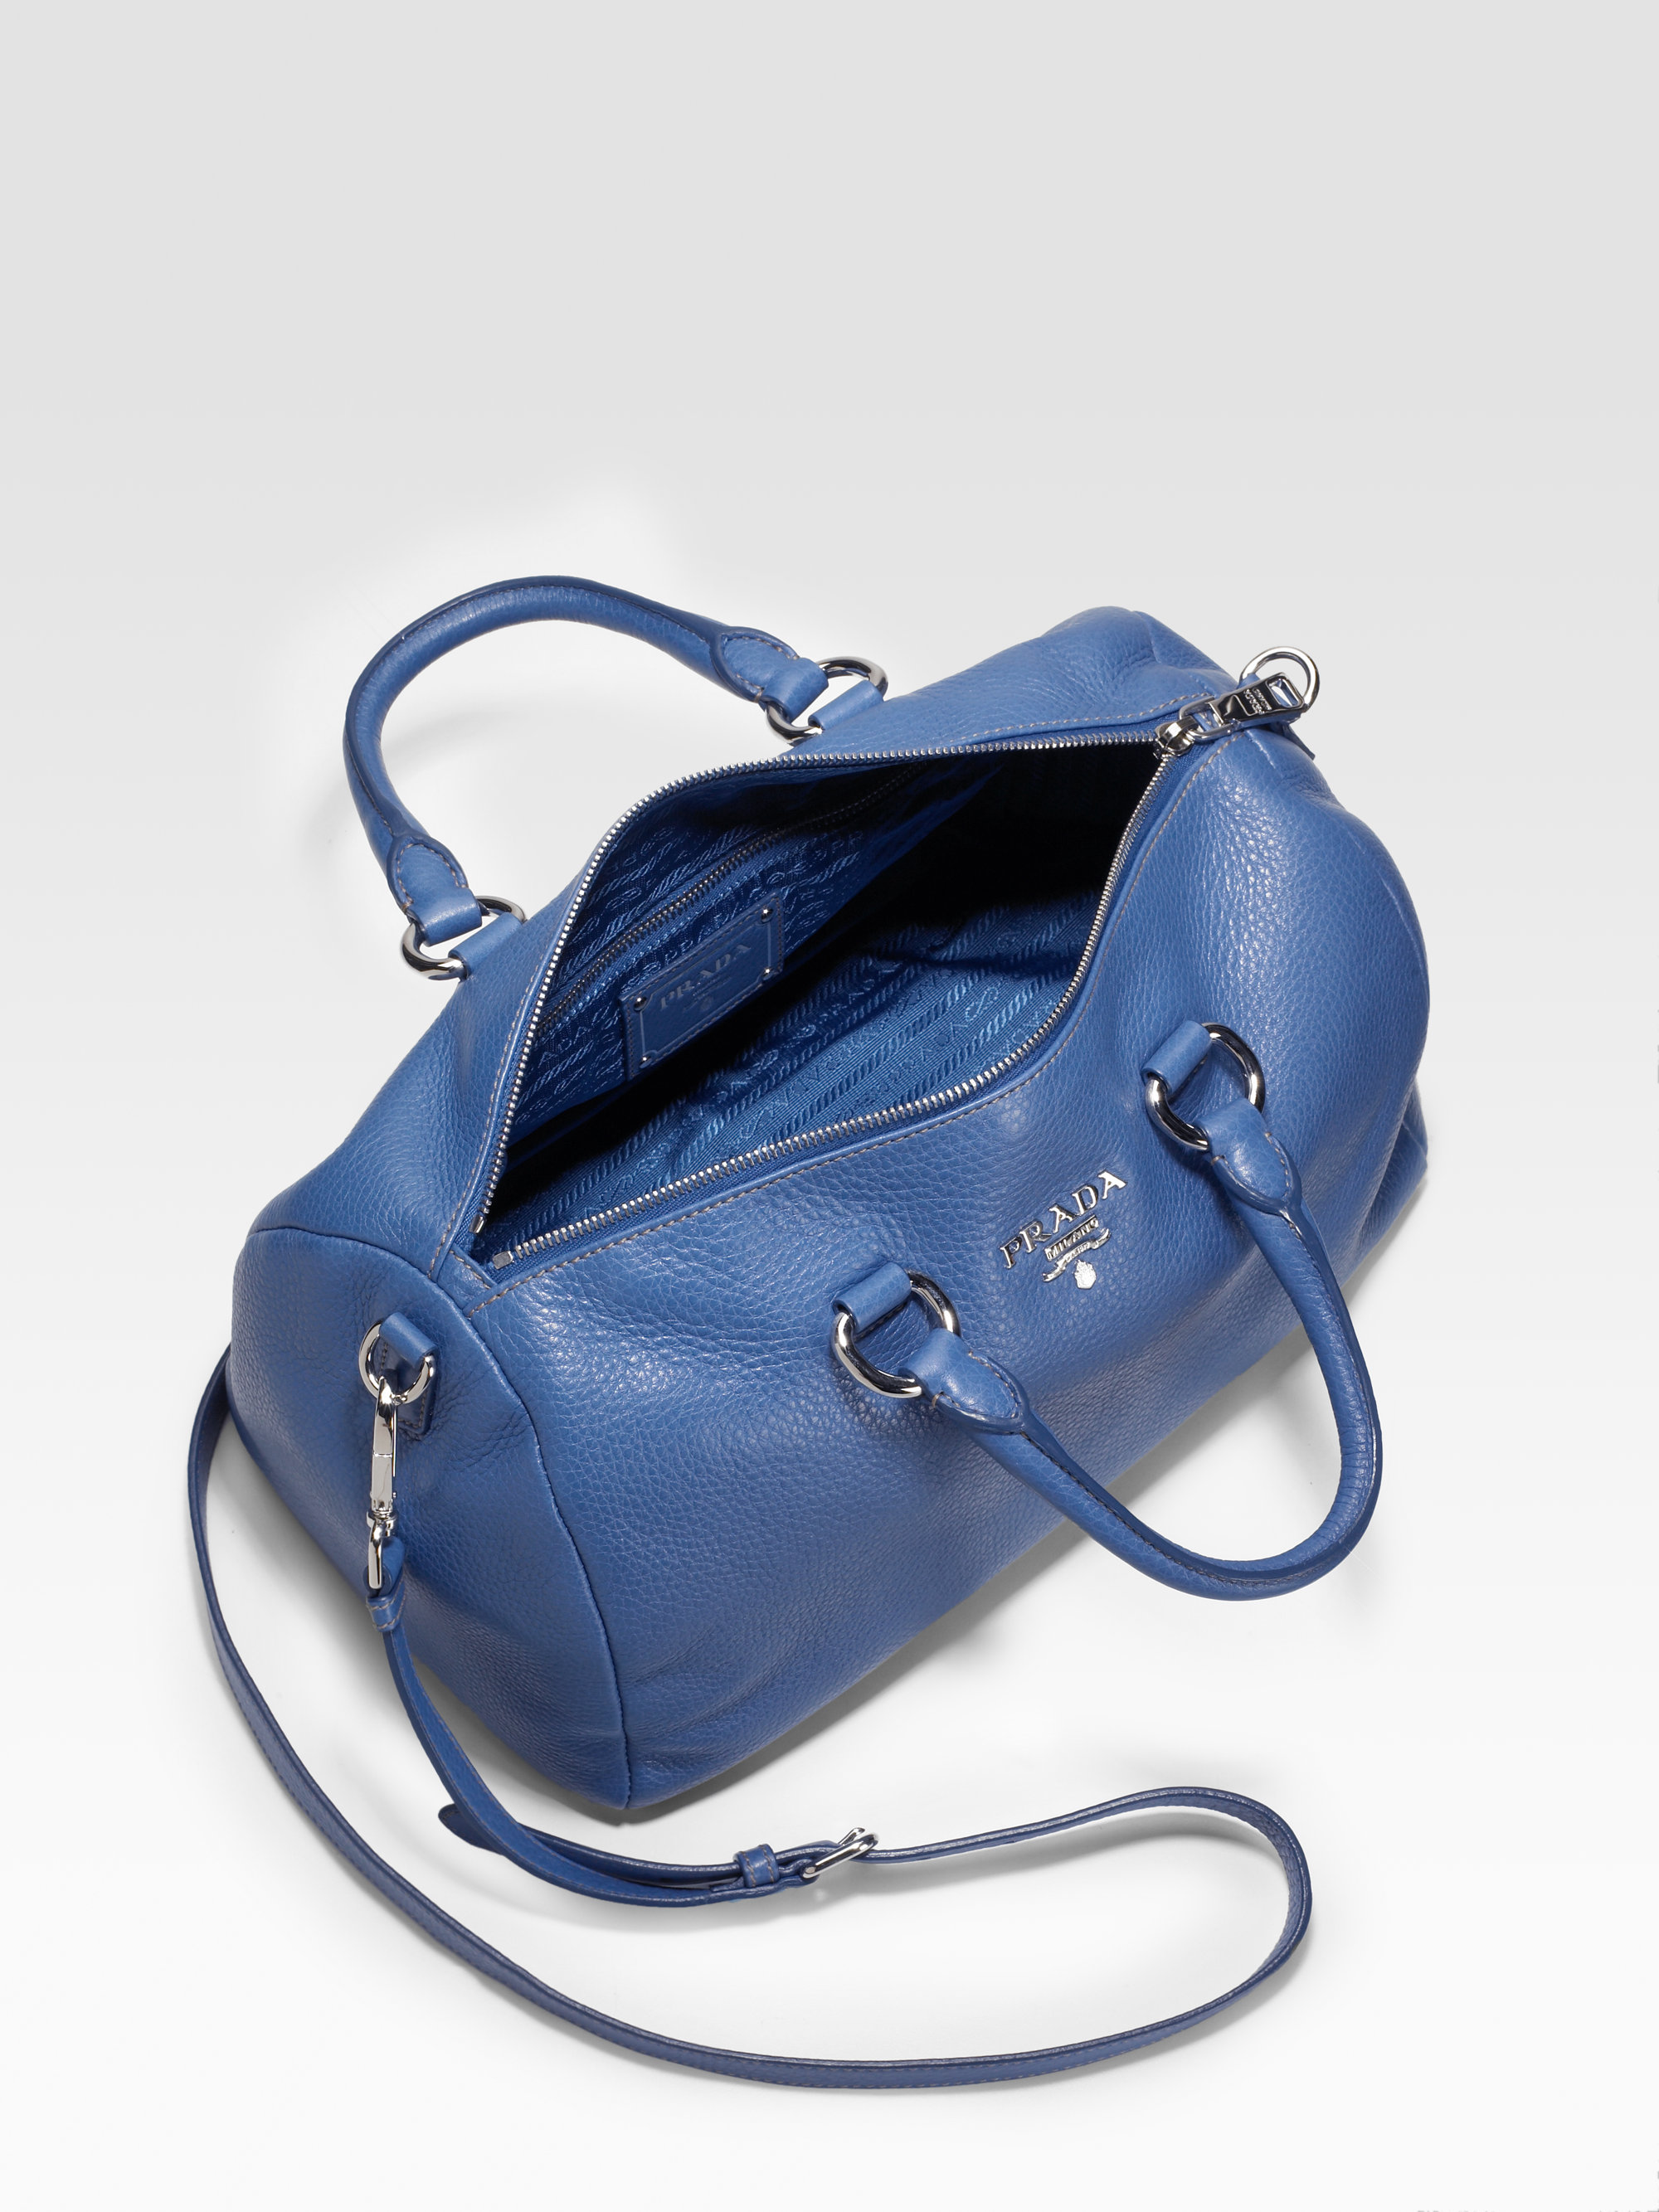 Prada Pebbled Leather Round Satchel in Blue (brown) | Lyst